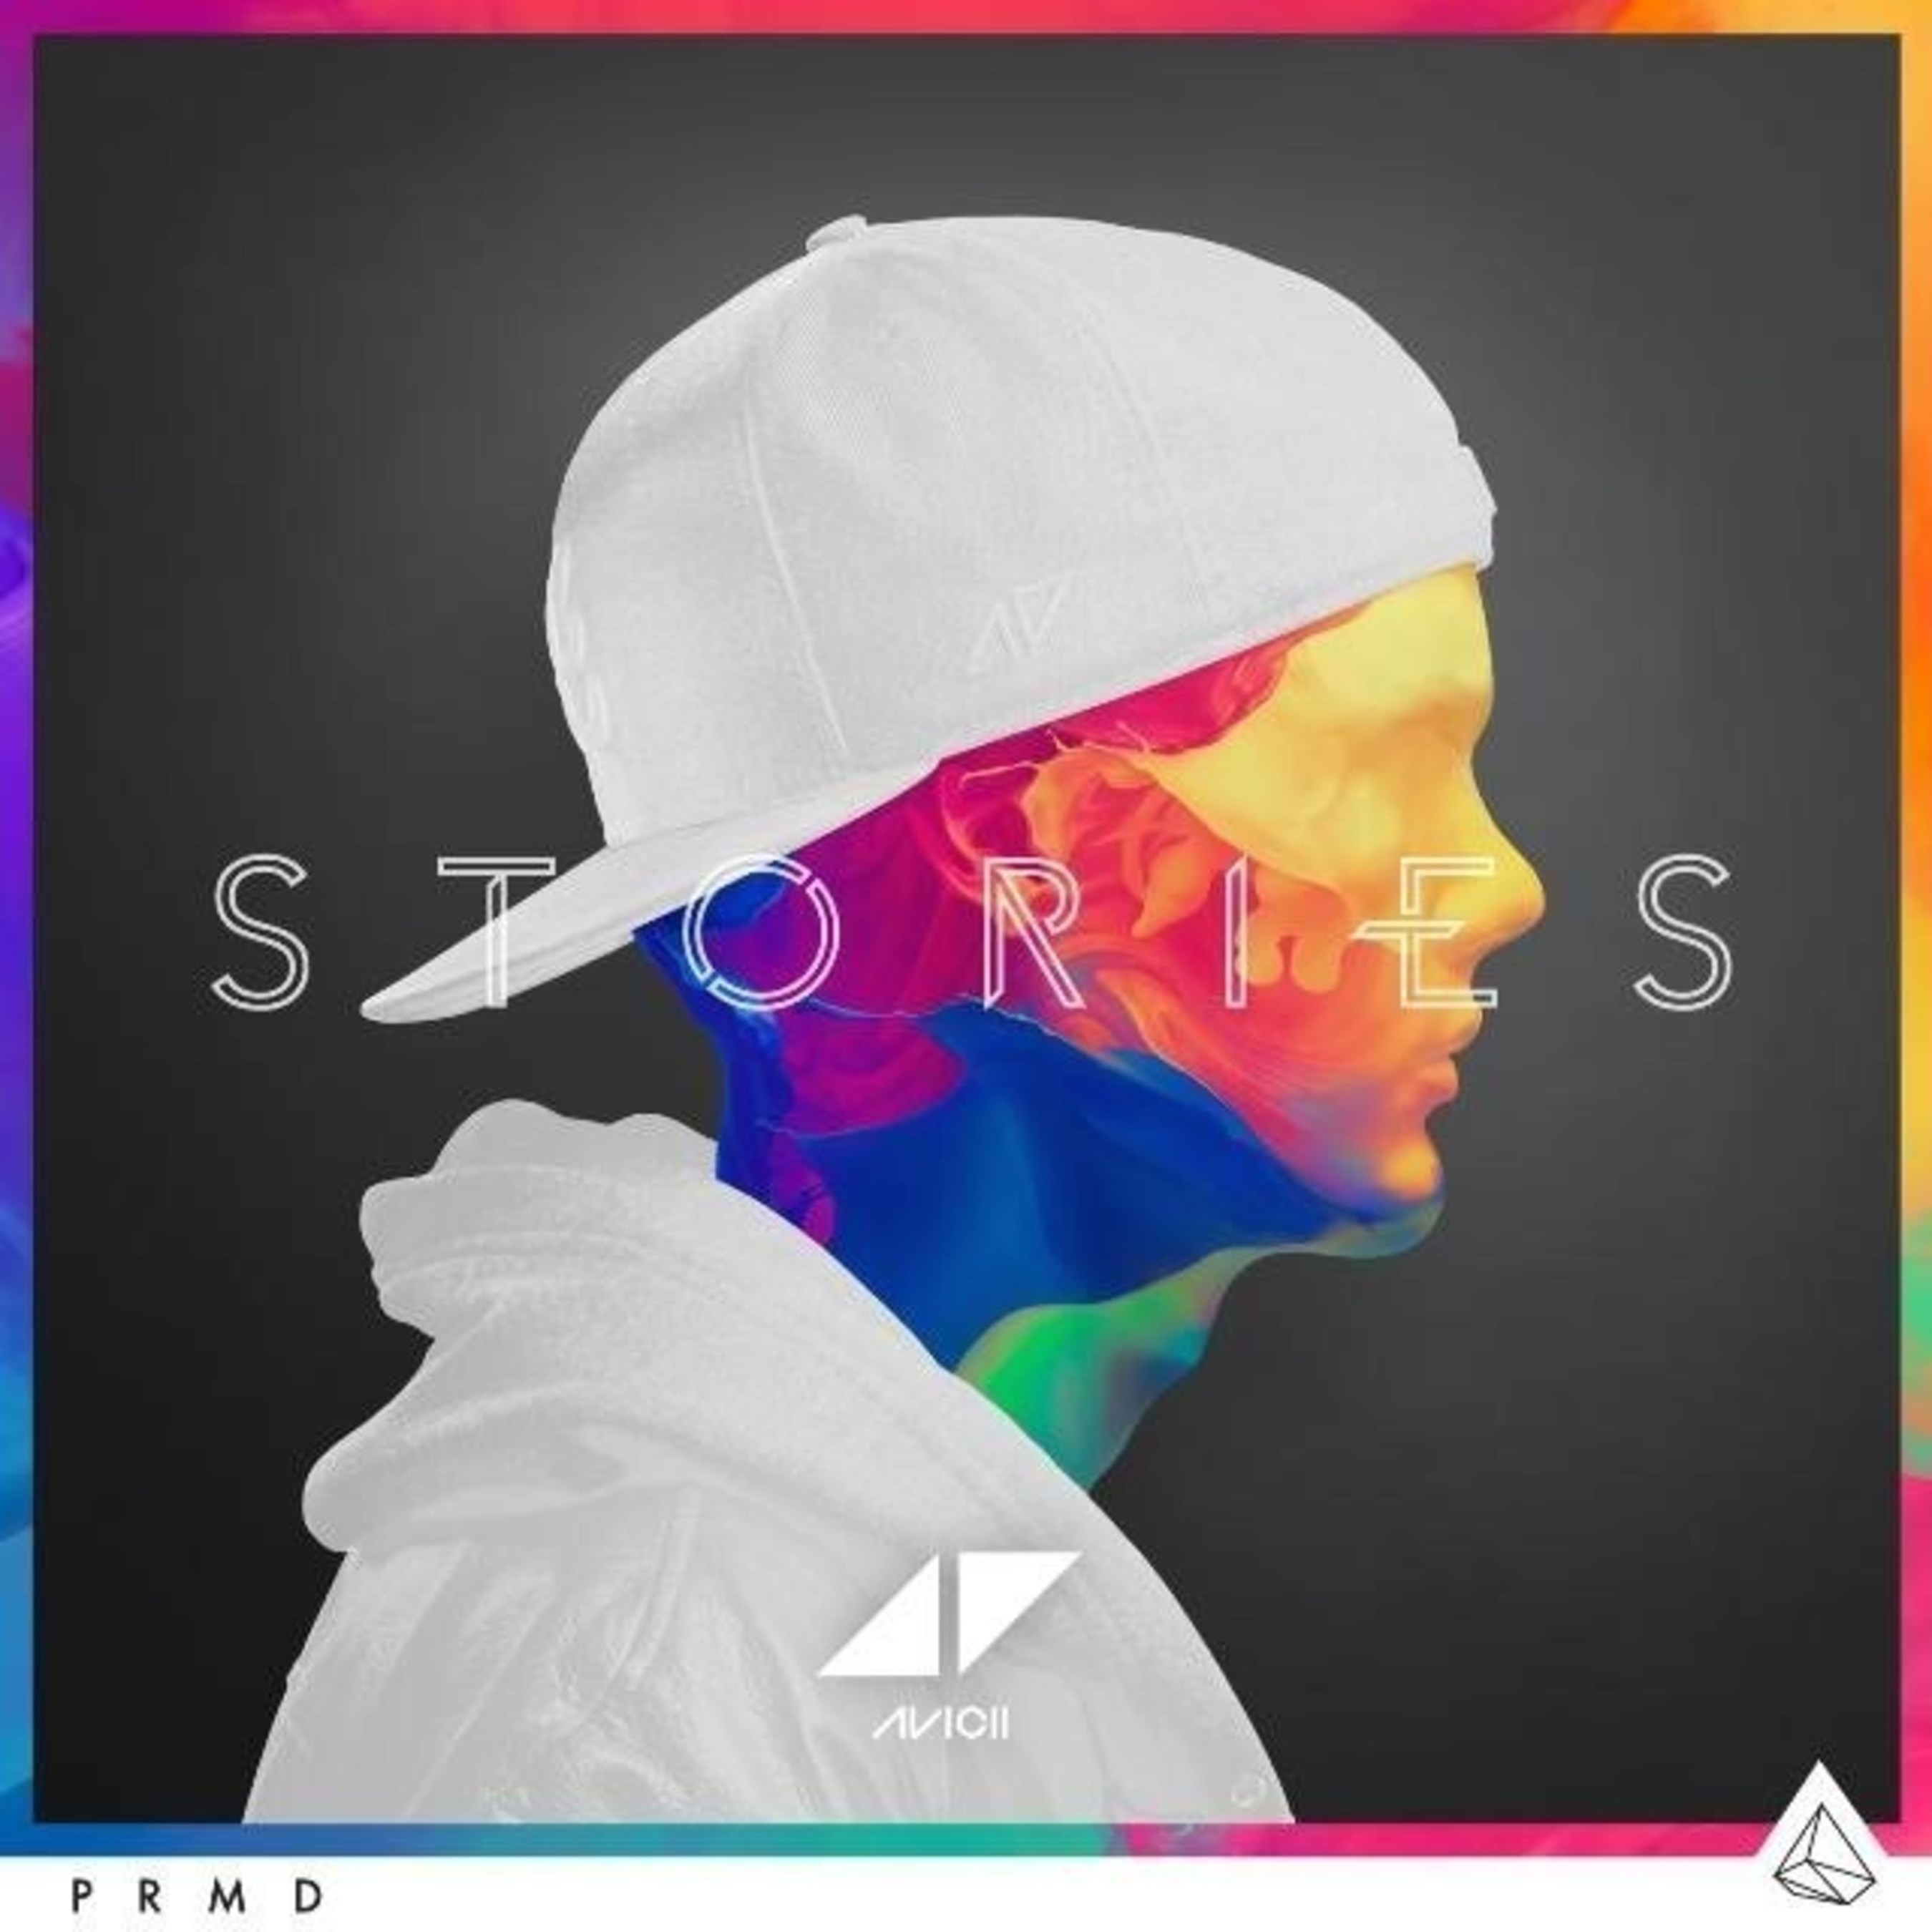 Avicii's Stories Set For October 2 Release, Pre-order Available Now